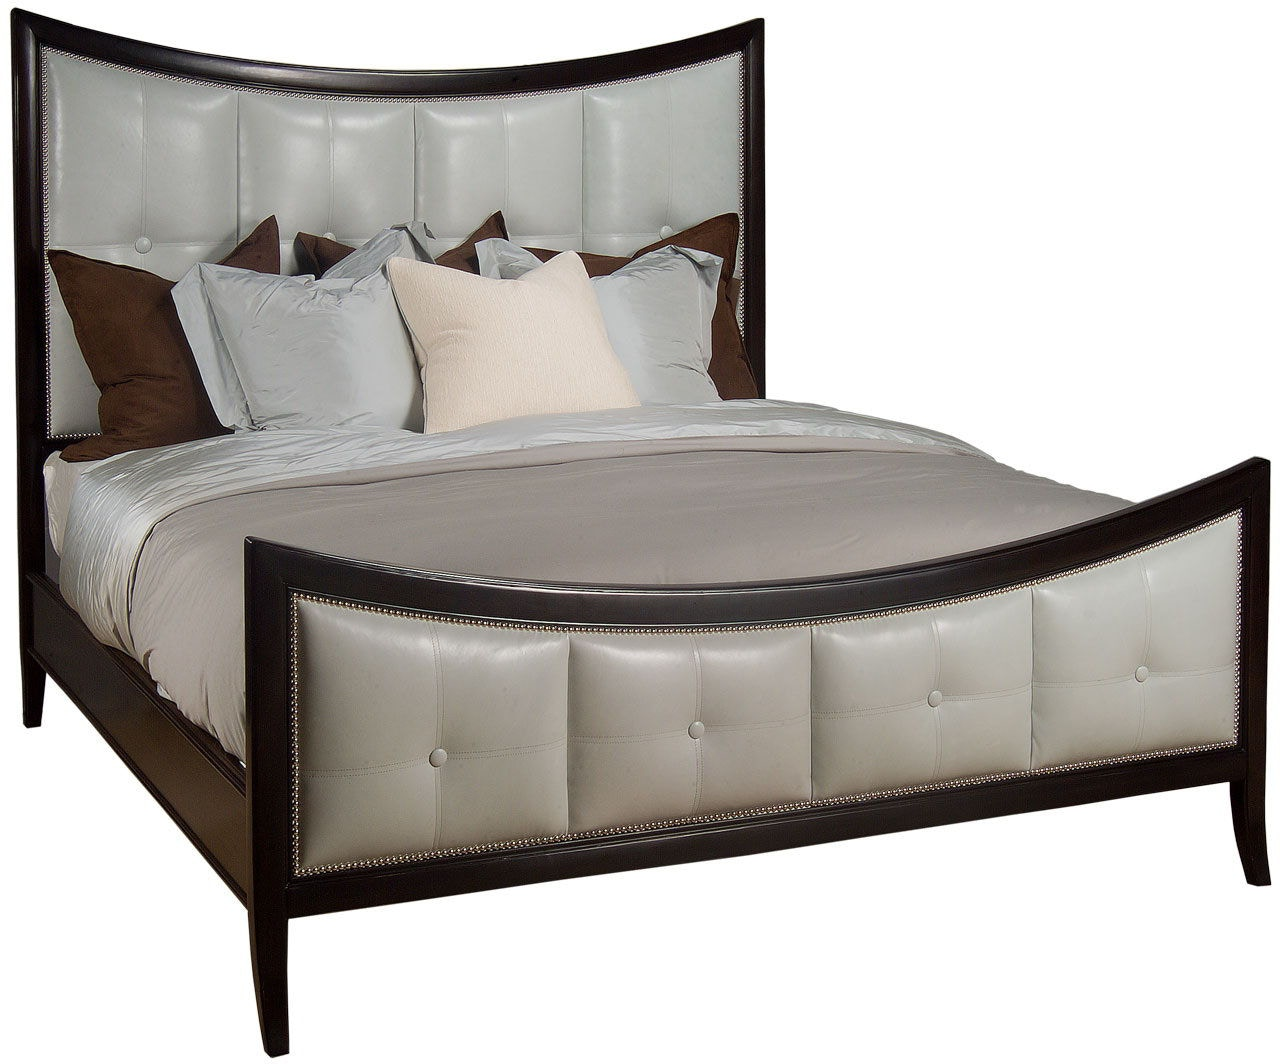 Chaddock Bedroom Impressions King Bed 714-11K